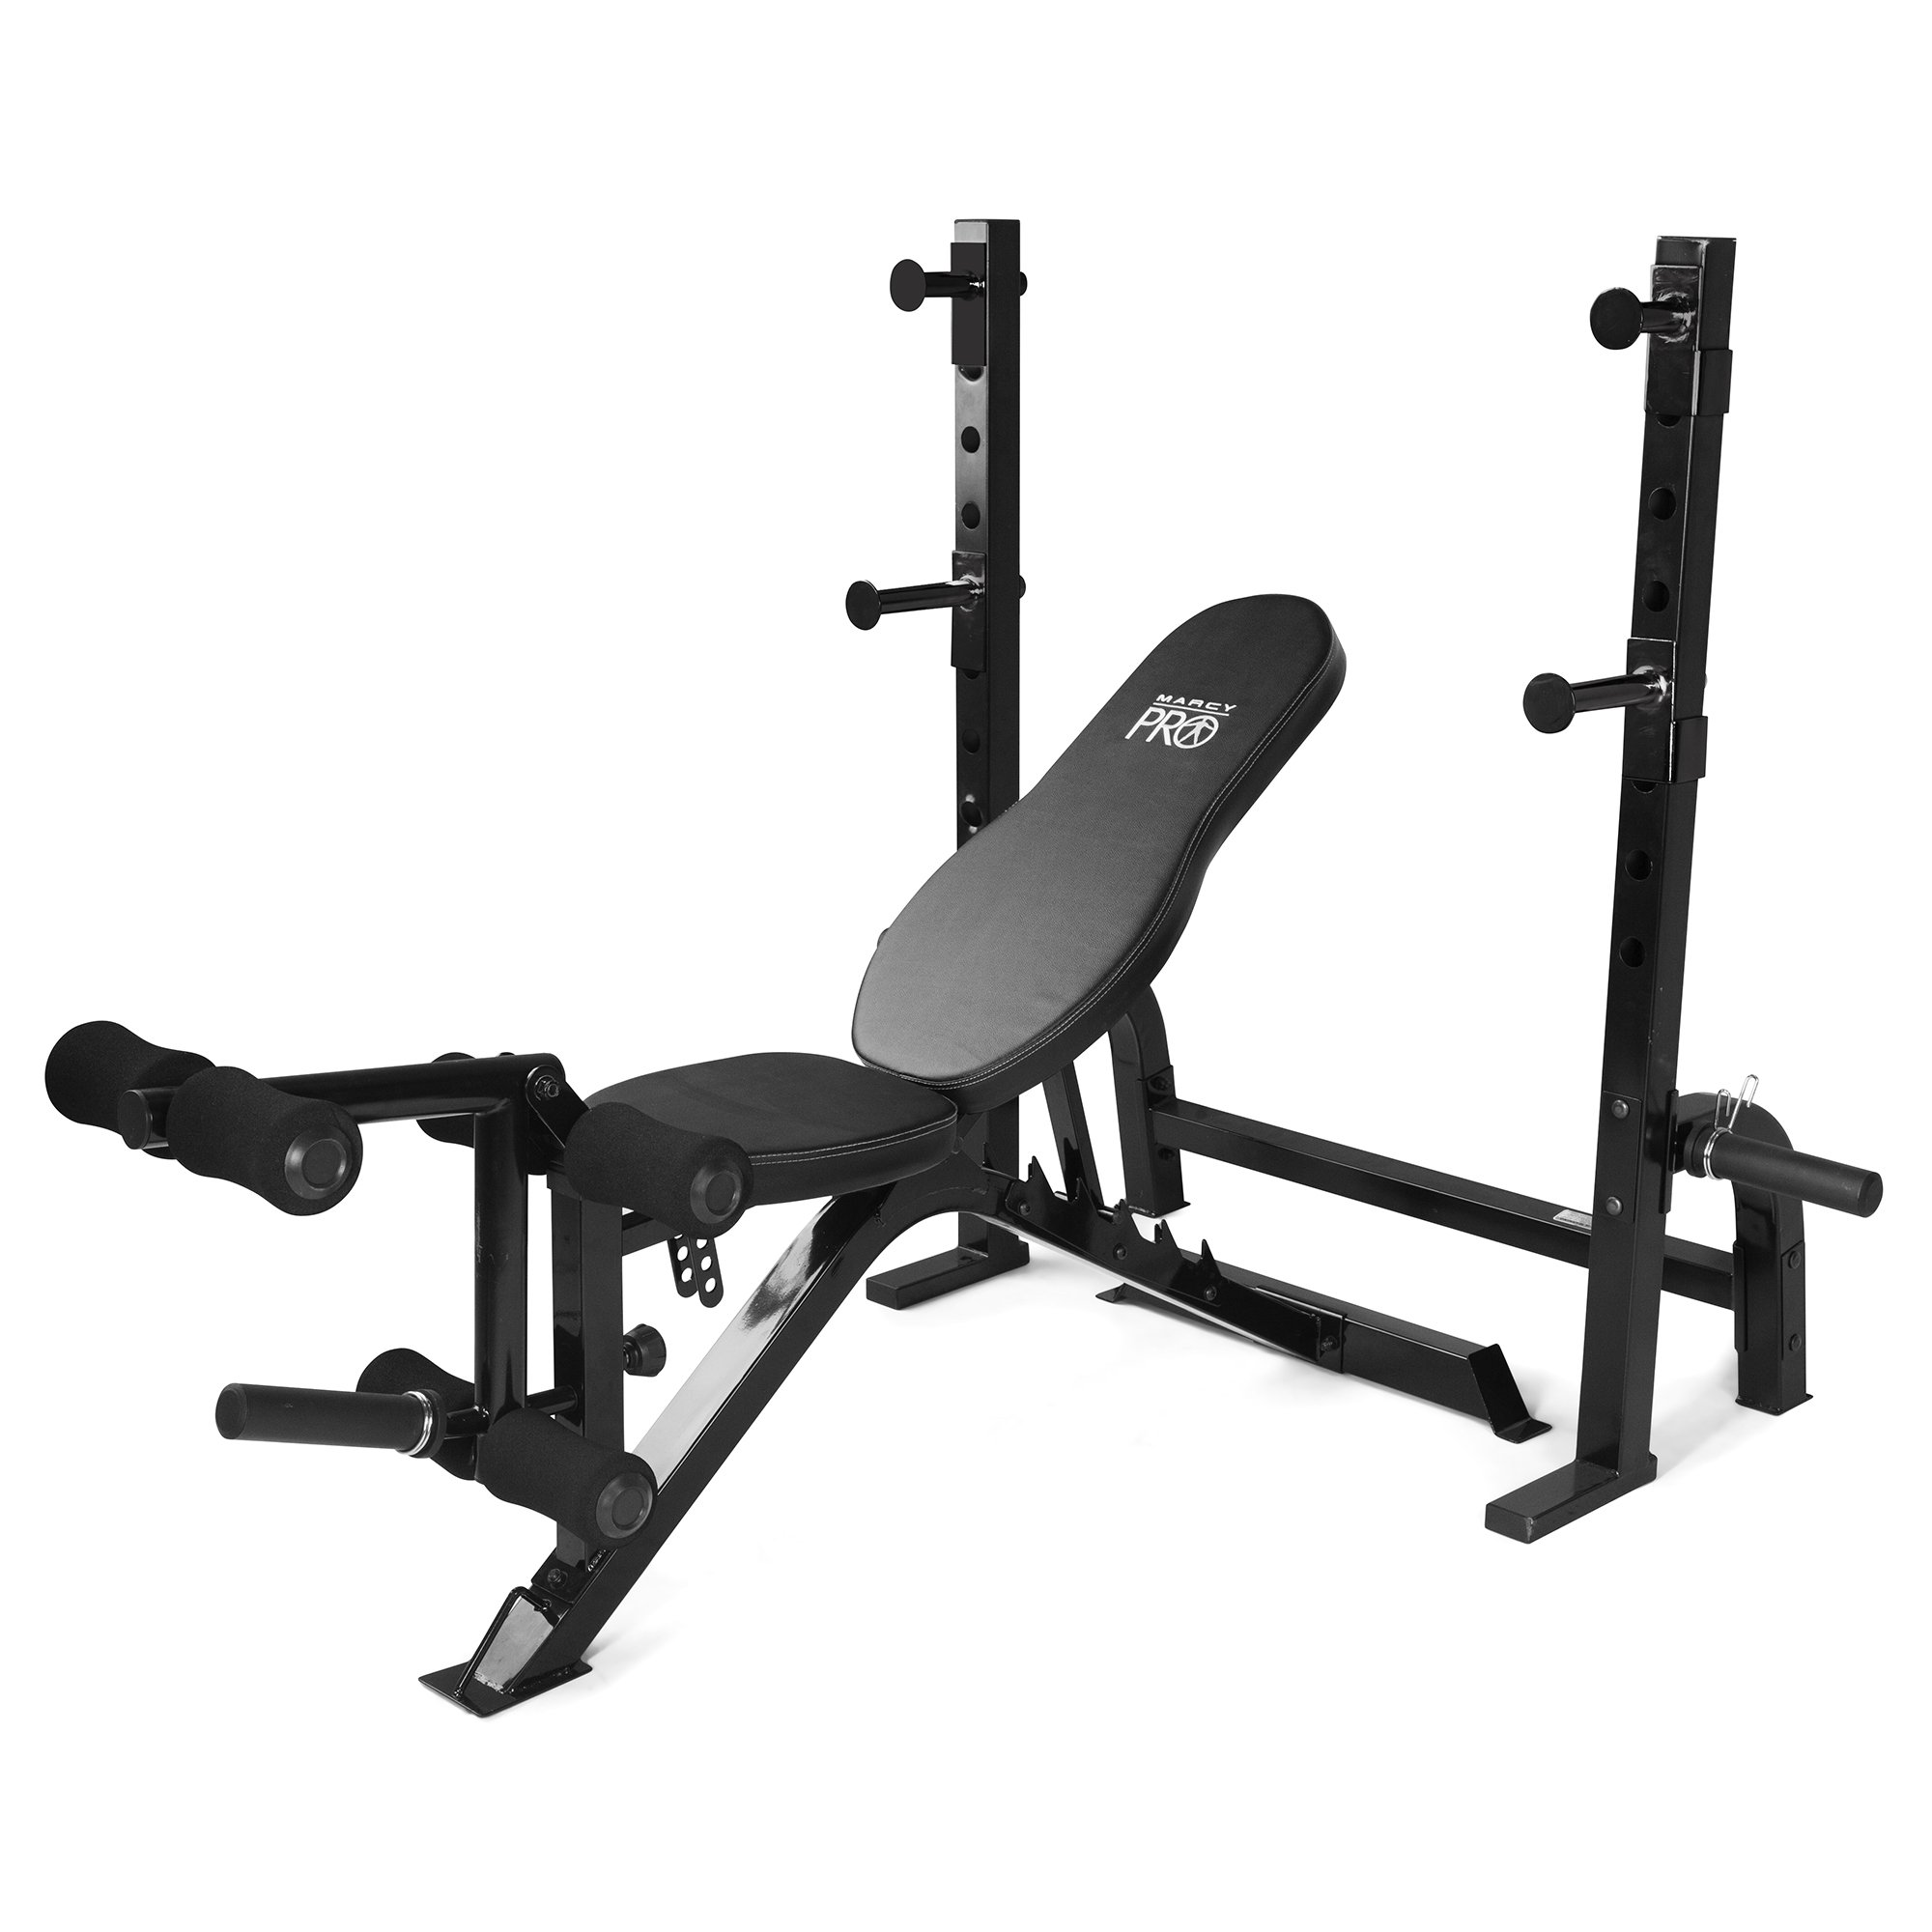 Marcy Adjustable Olympic Exercise Bench with Squat Rack and Leg Developer PM-70210 by Marcy